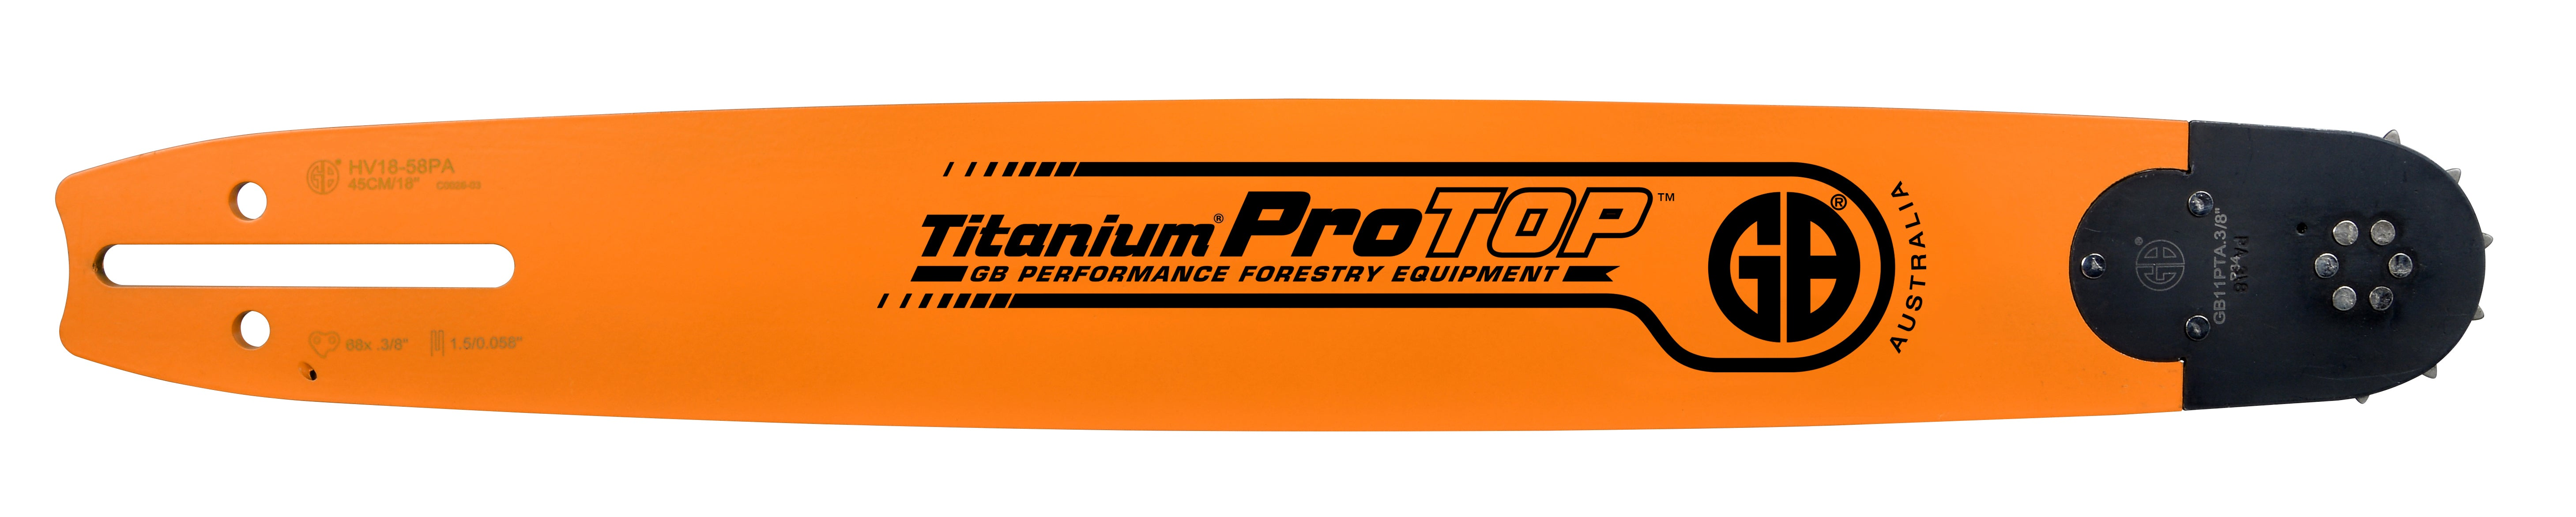 GB Titanium®ProTOP Chainsaw Bar HV18-58PA